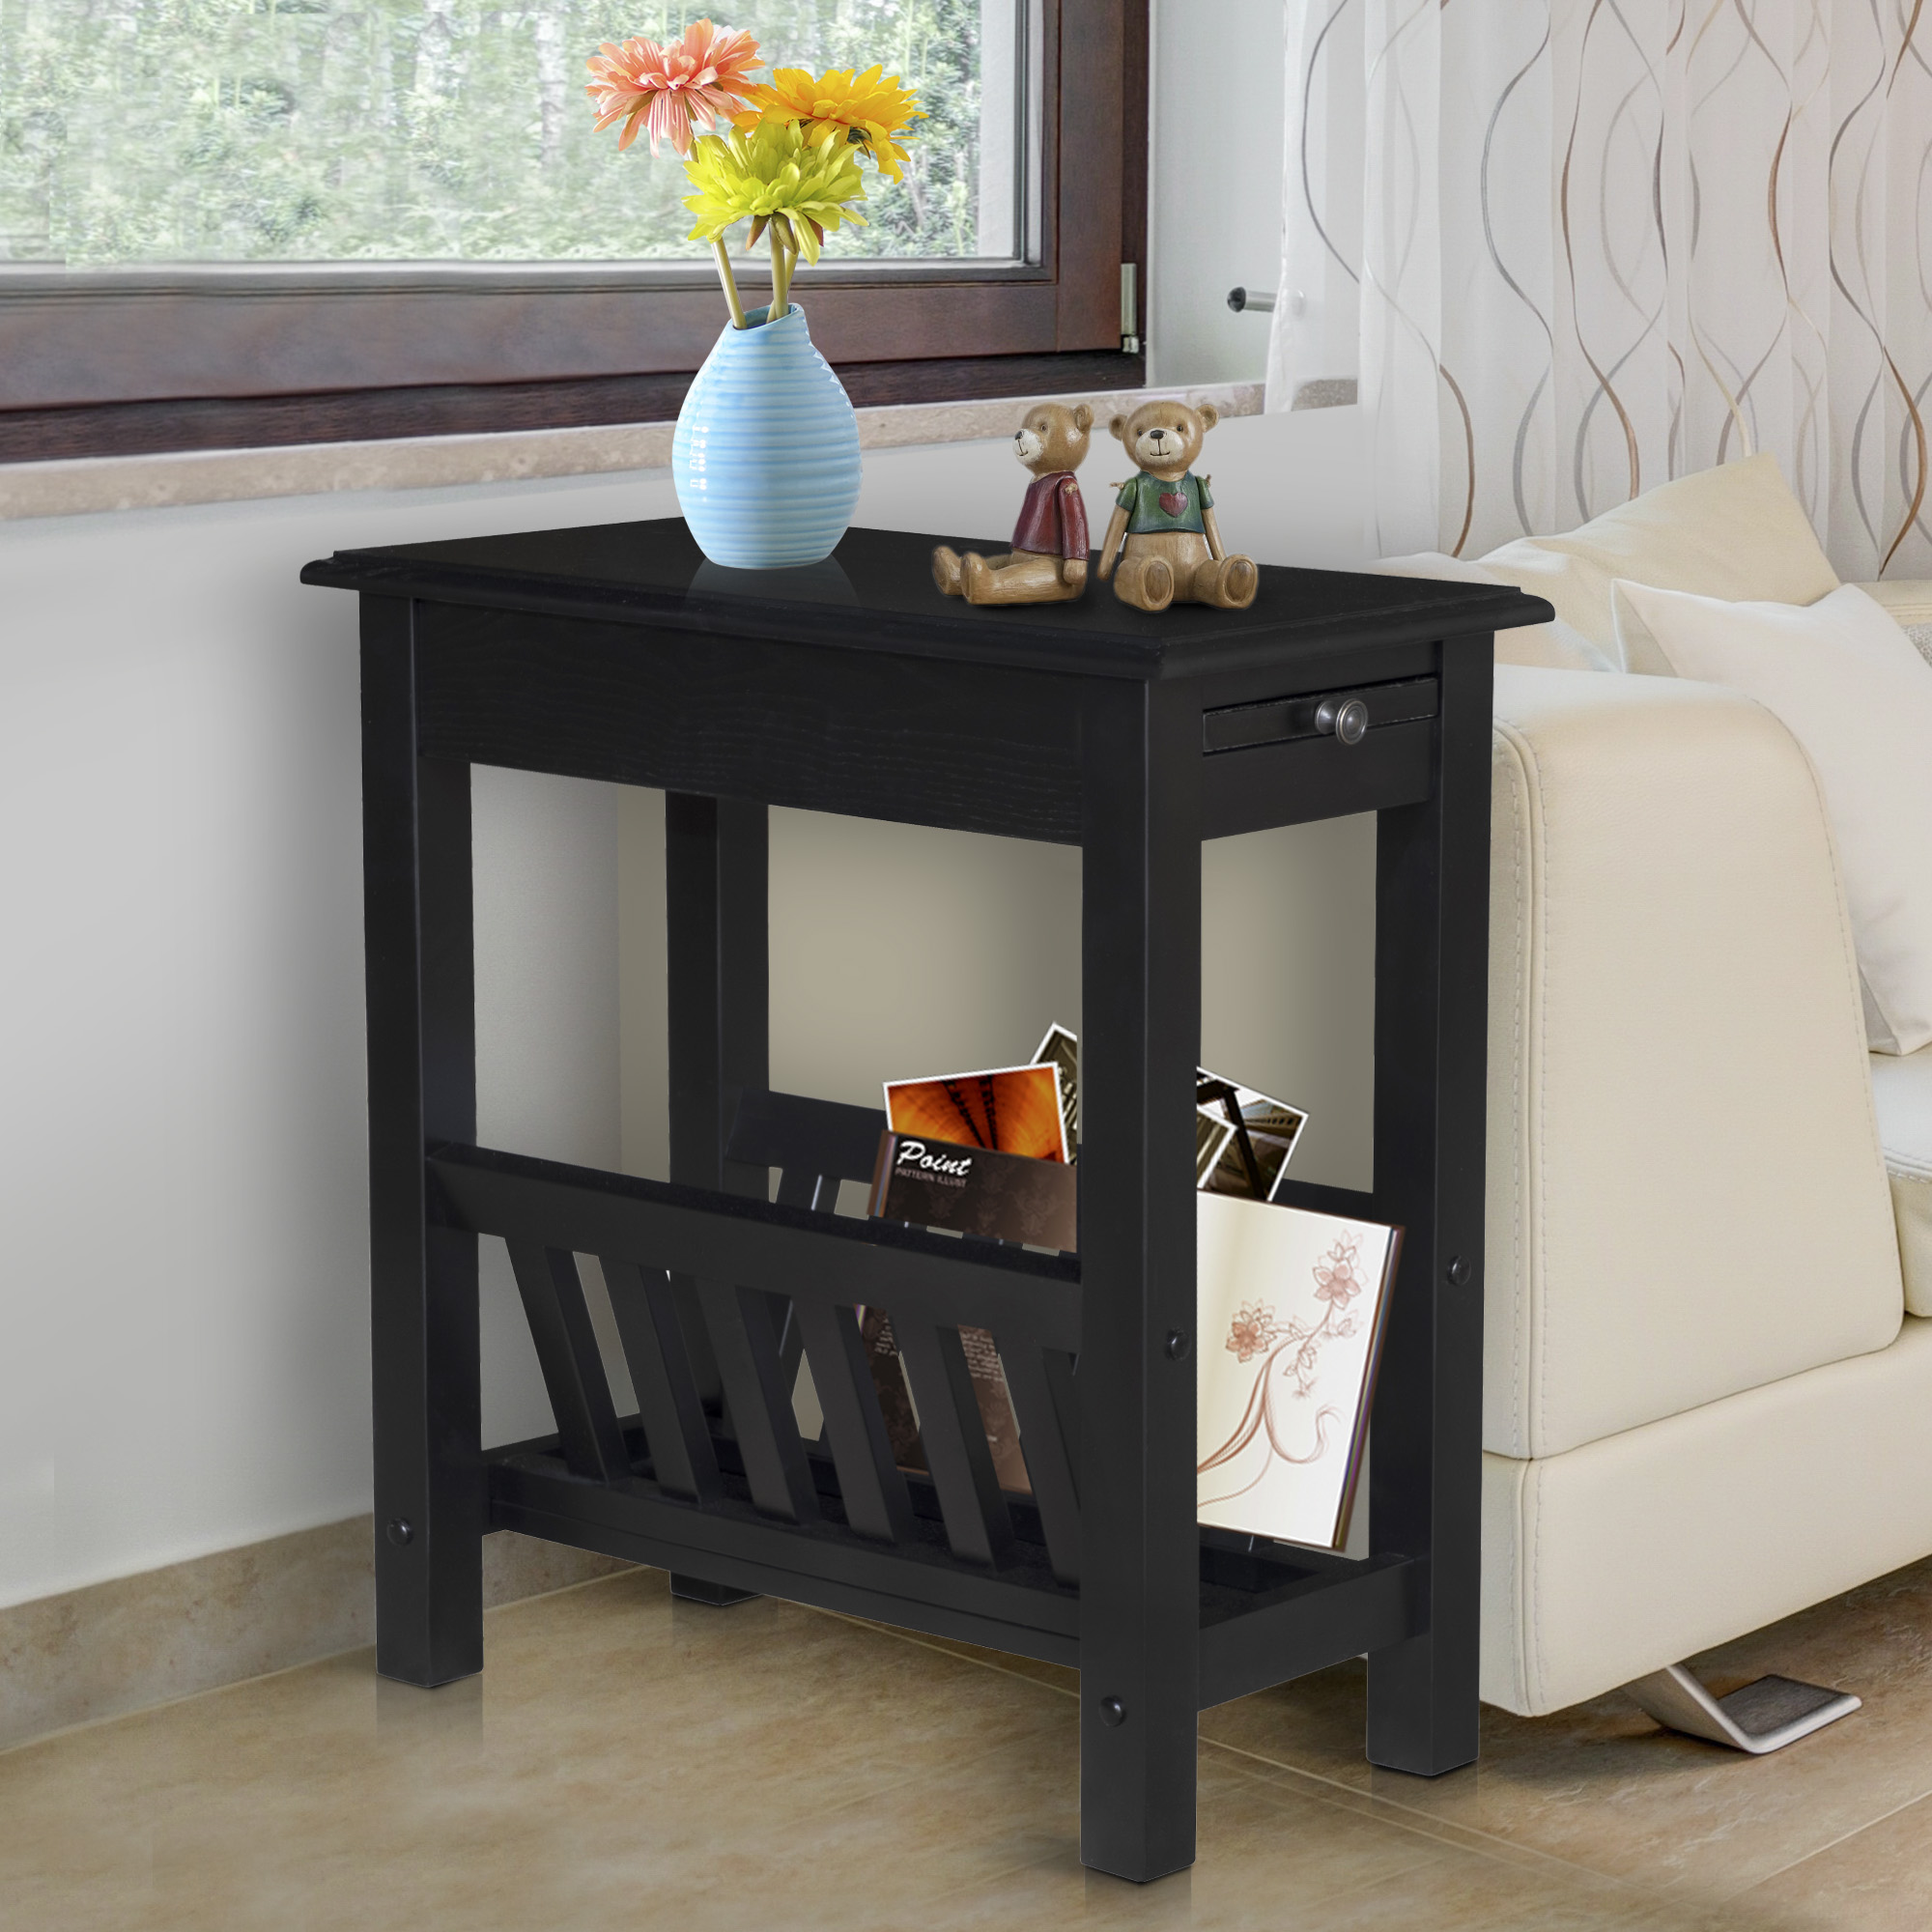 aosom homcom modern tier acacia wood end table side desk with cup holder and lower chocolate brown couch decorating ideas small metal accent ashley furniture industries kitchen